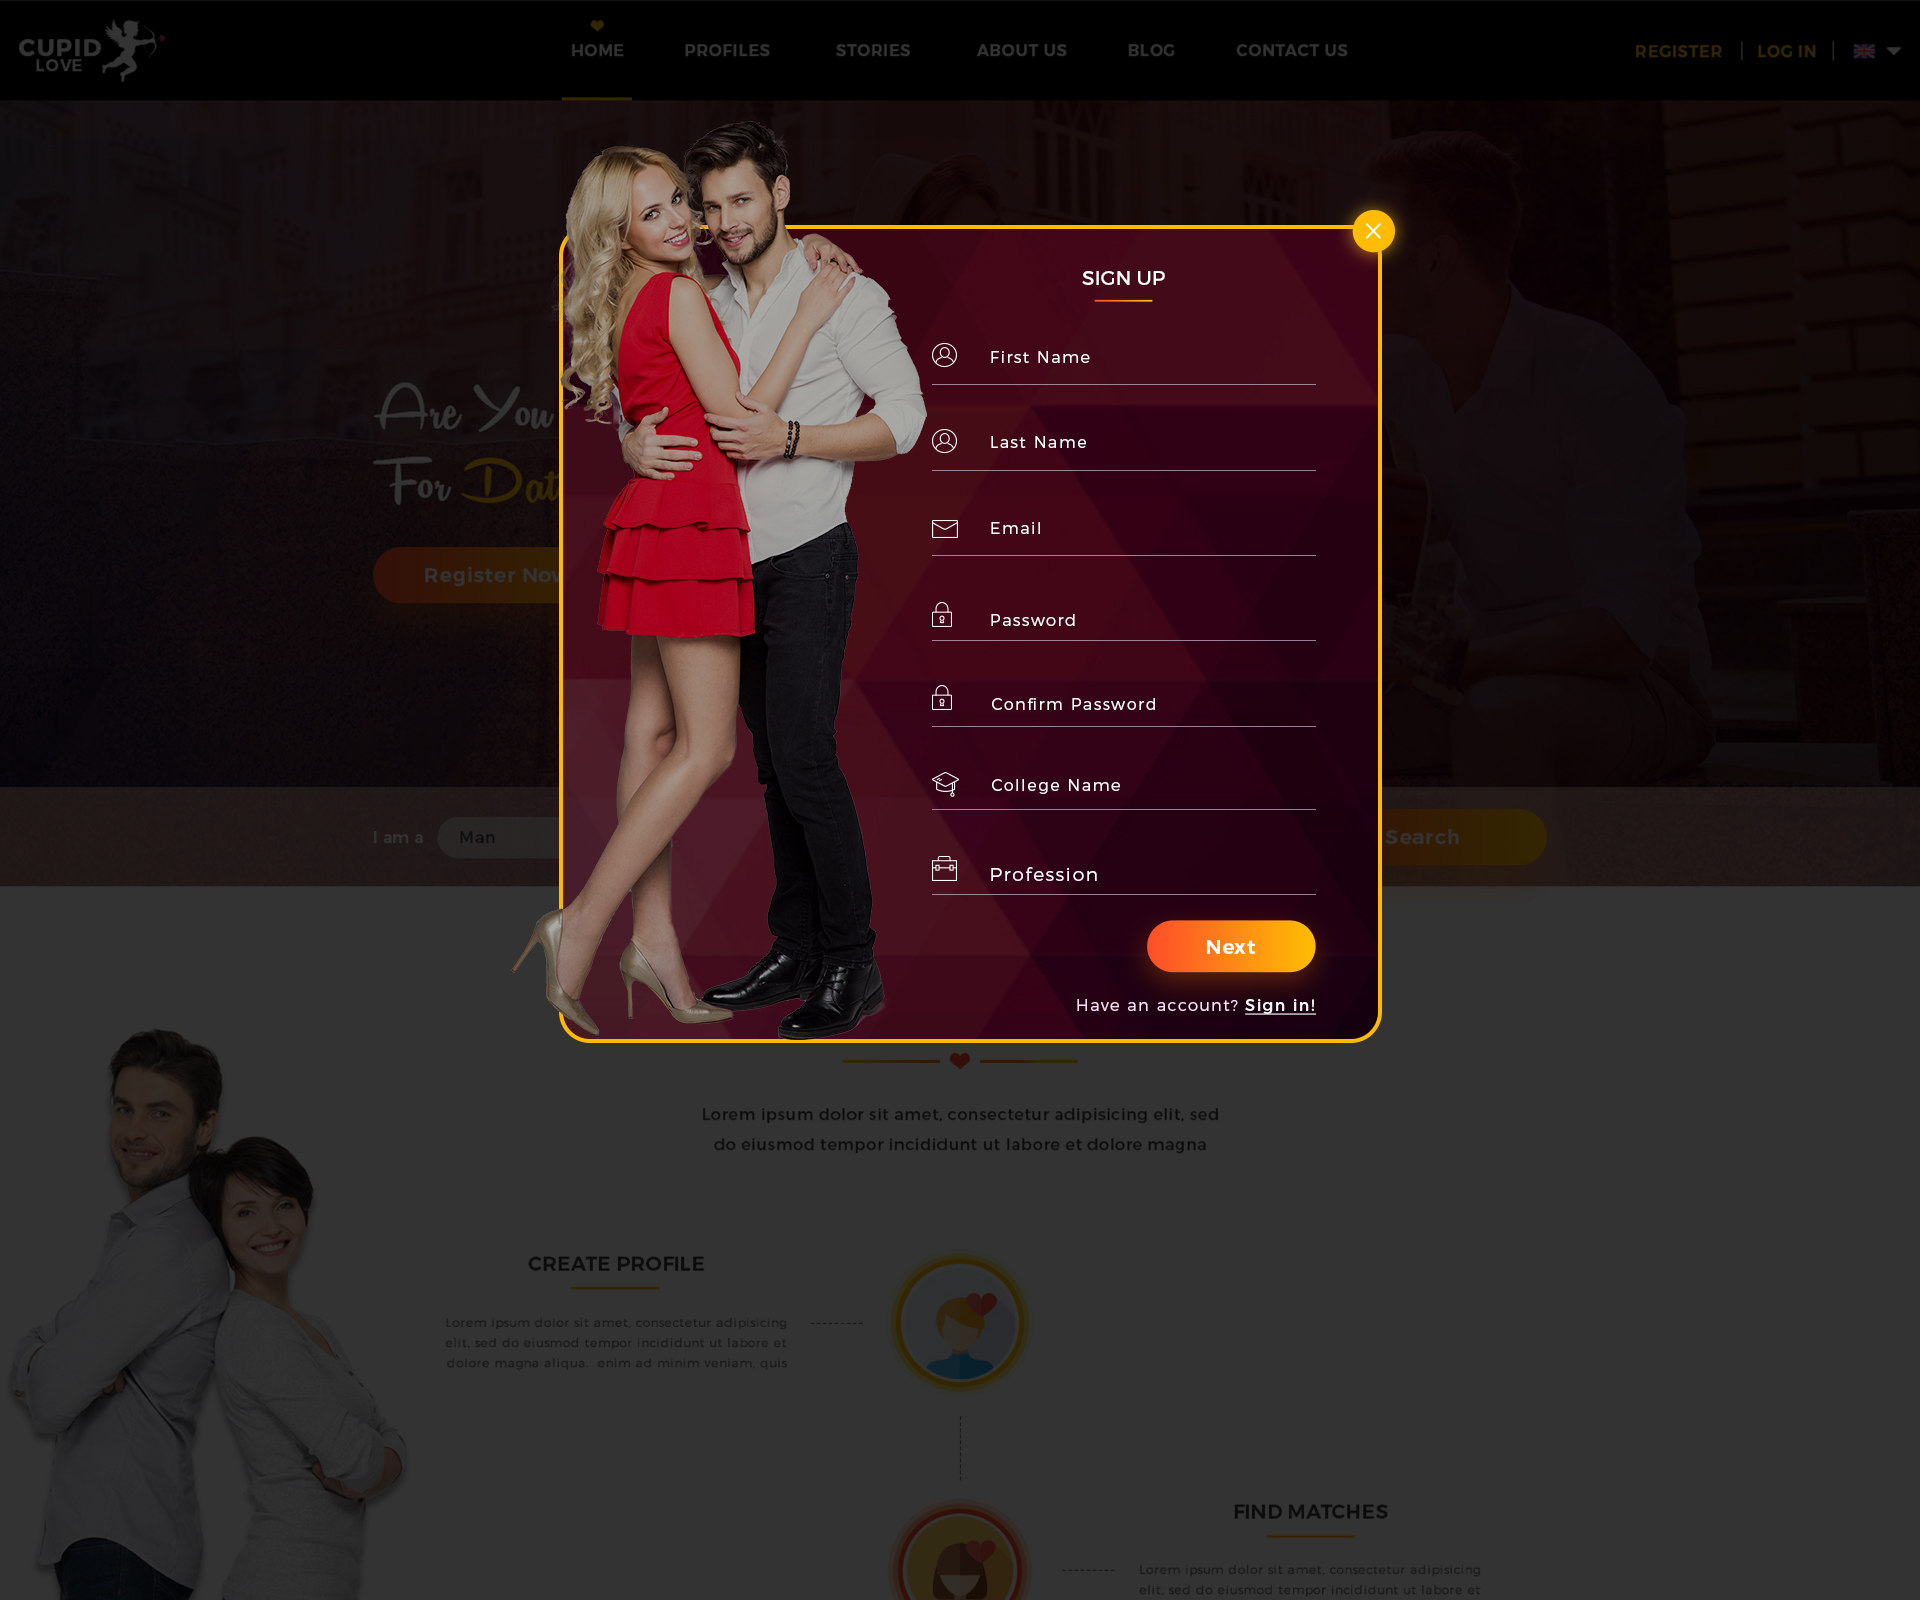 oasis buddhist dating site Oasis dating sites - welcome to one of the largest online dating sites where you can find potential matches according to your location register for free and start dating online.